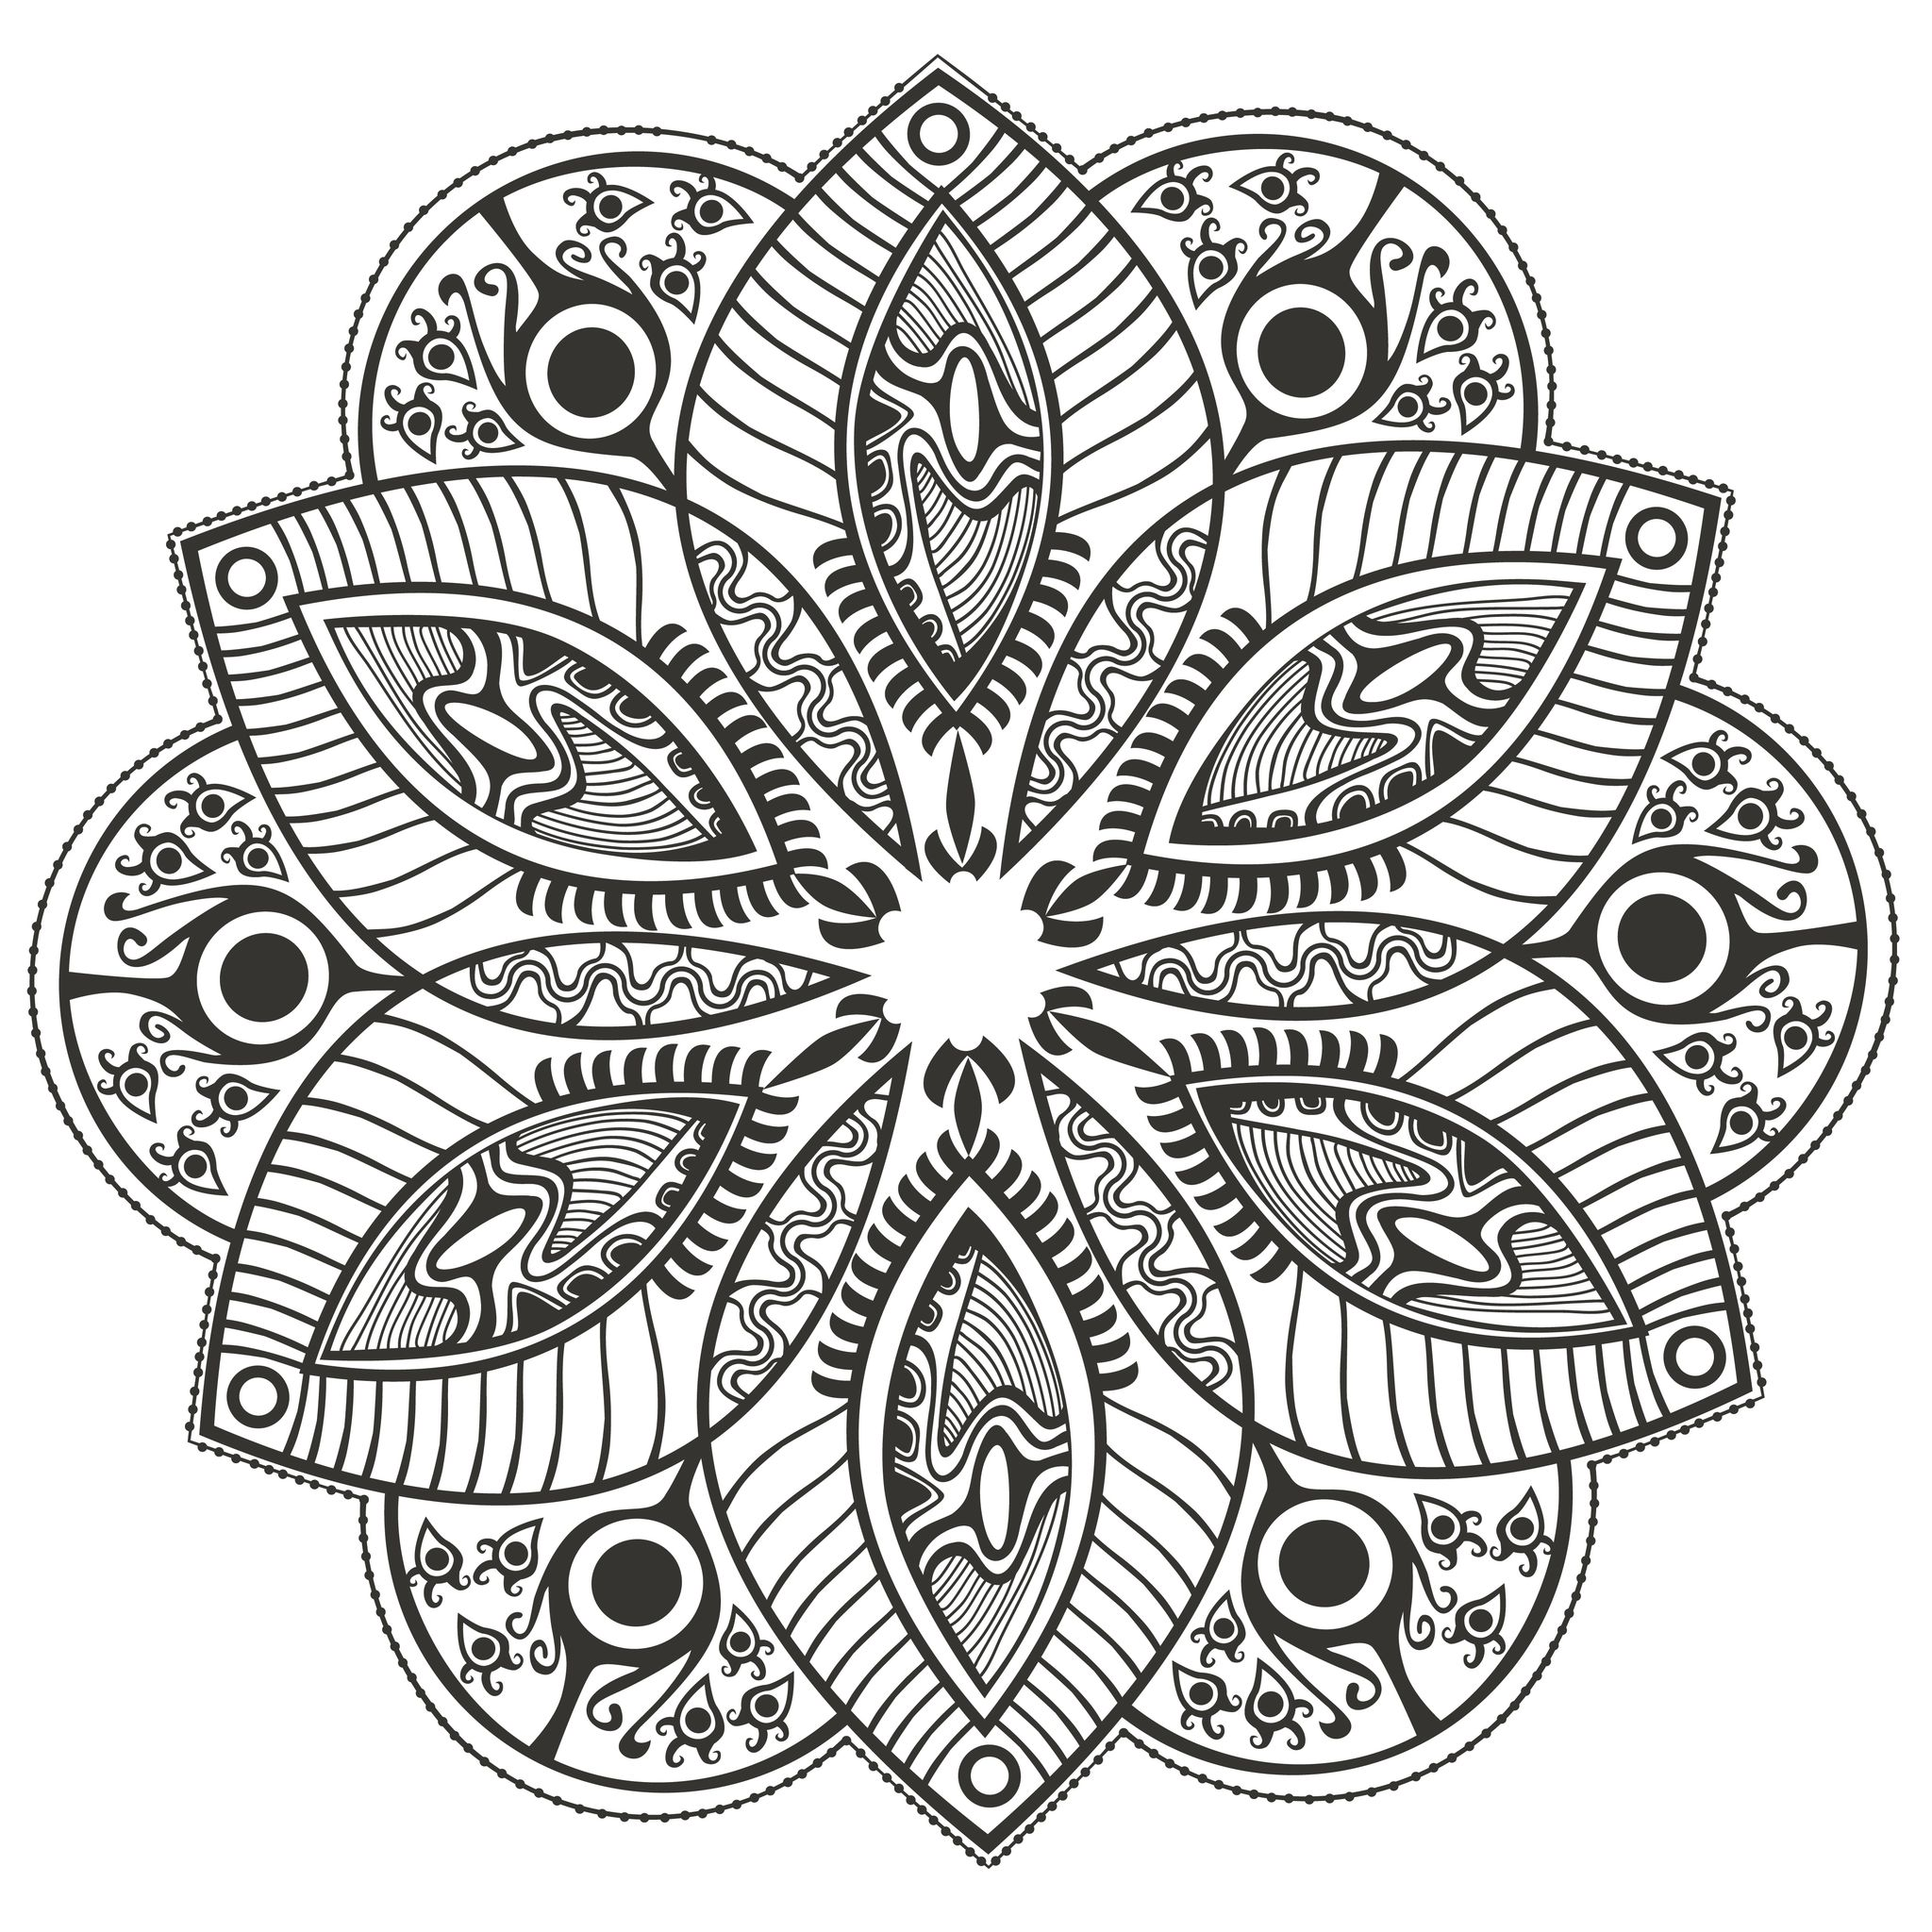 Original Flower Mandala